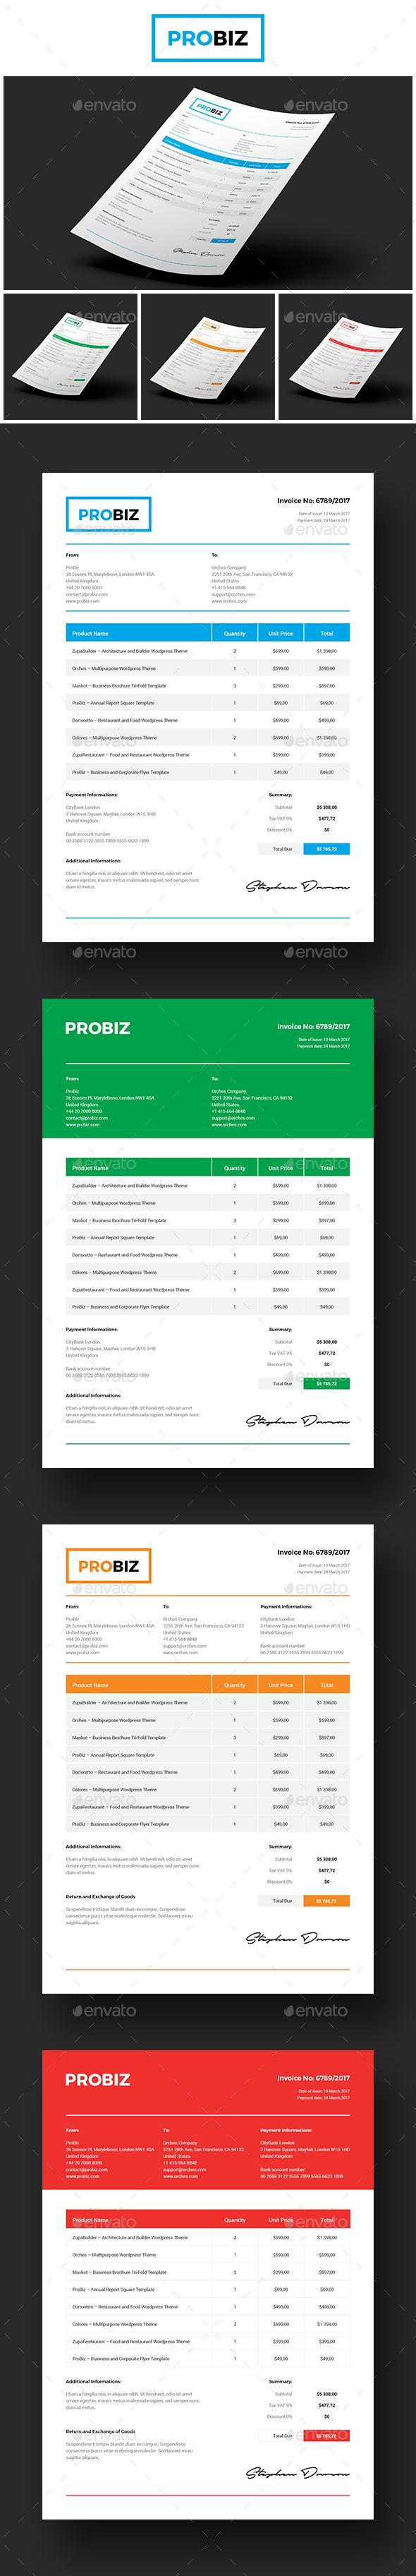 probiz business and corporate invoice template indesign